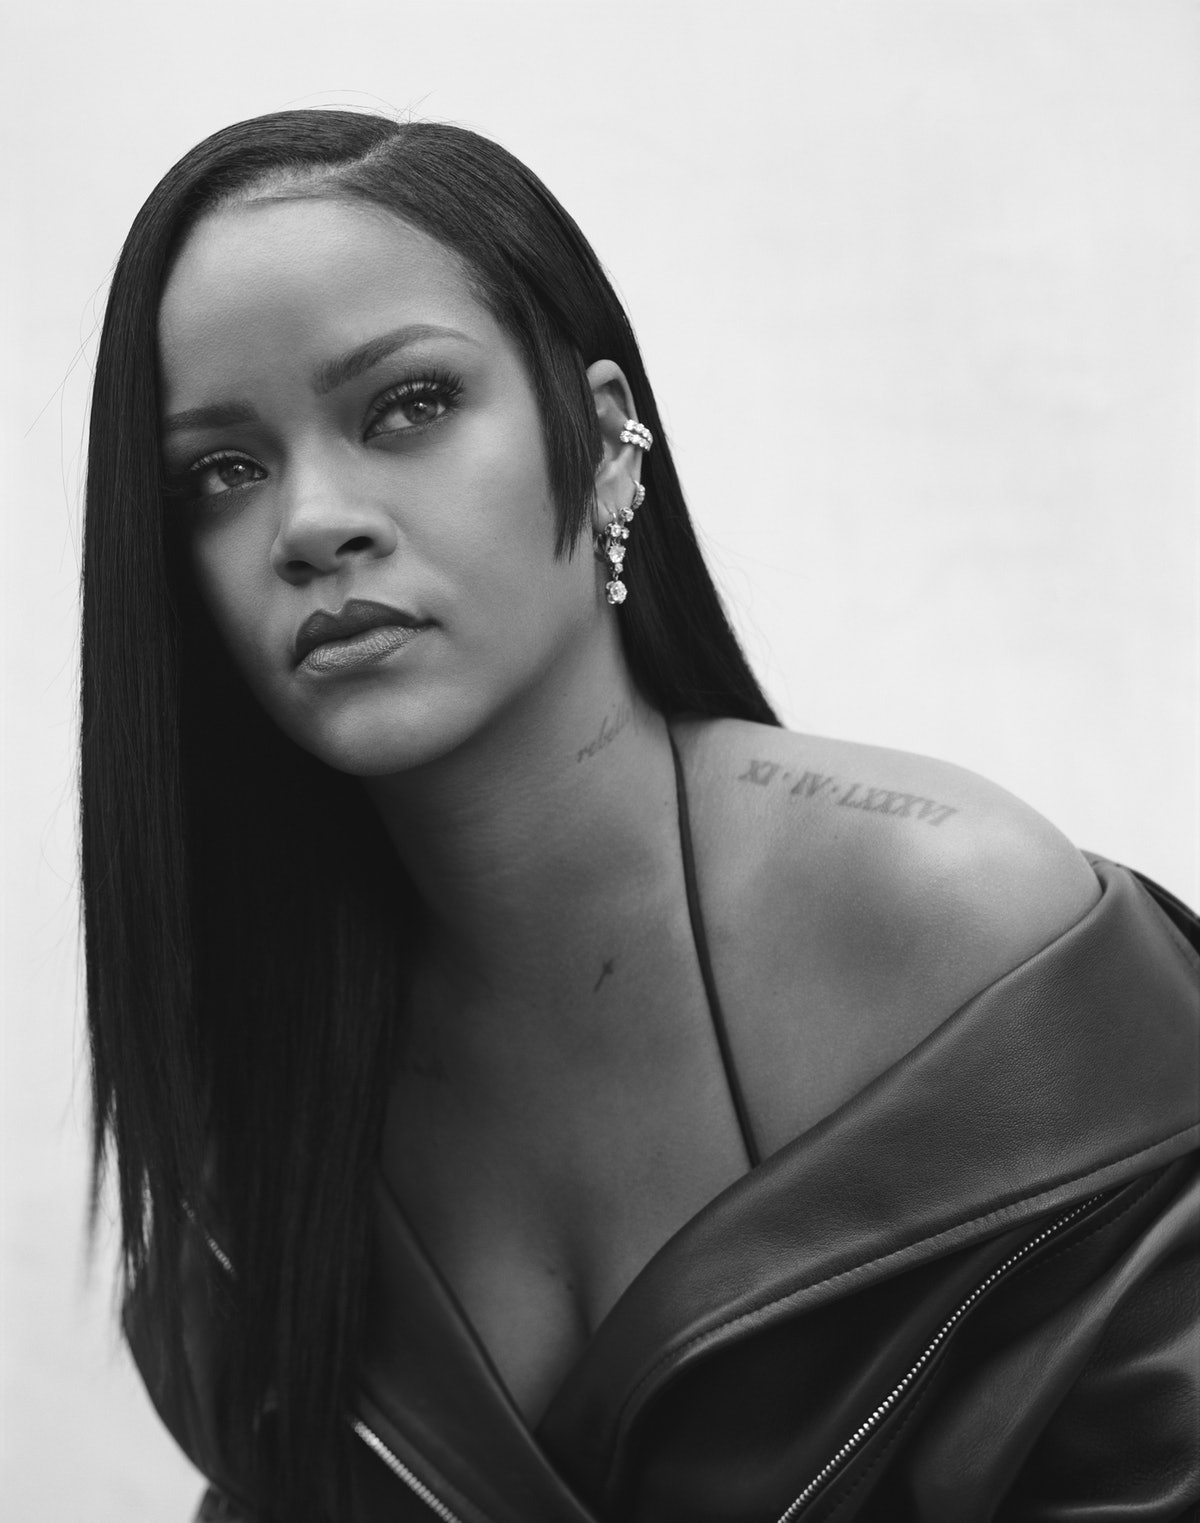 A promotional, black-and-white portrait of Rihanna with an asymmetrical side burn haircut for Fenty ...